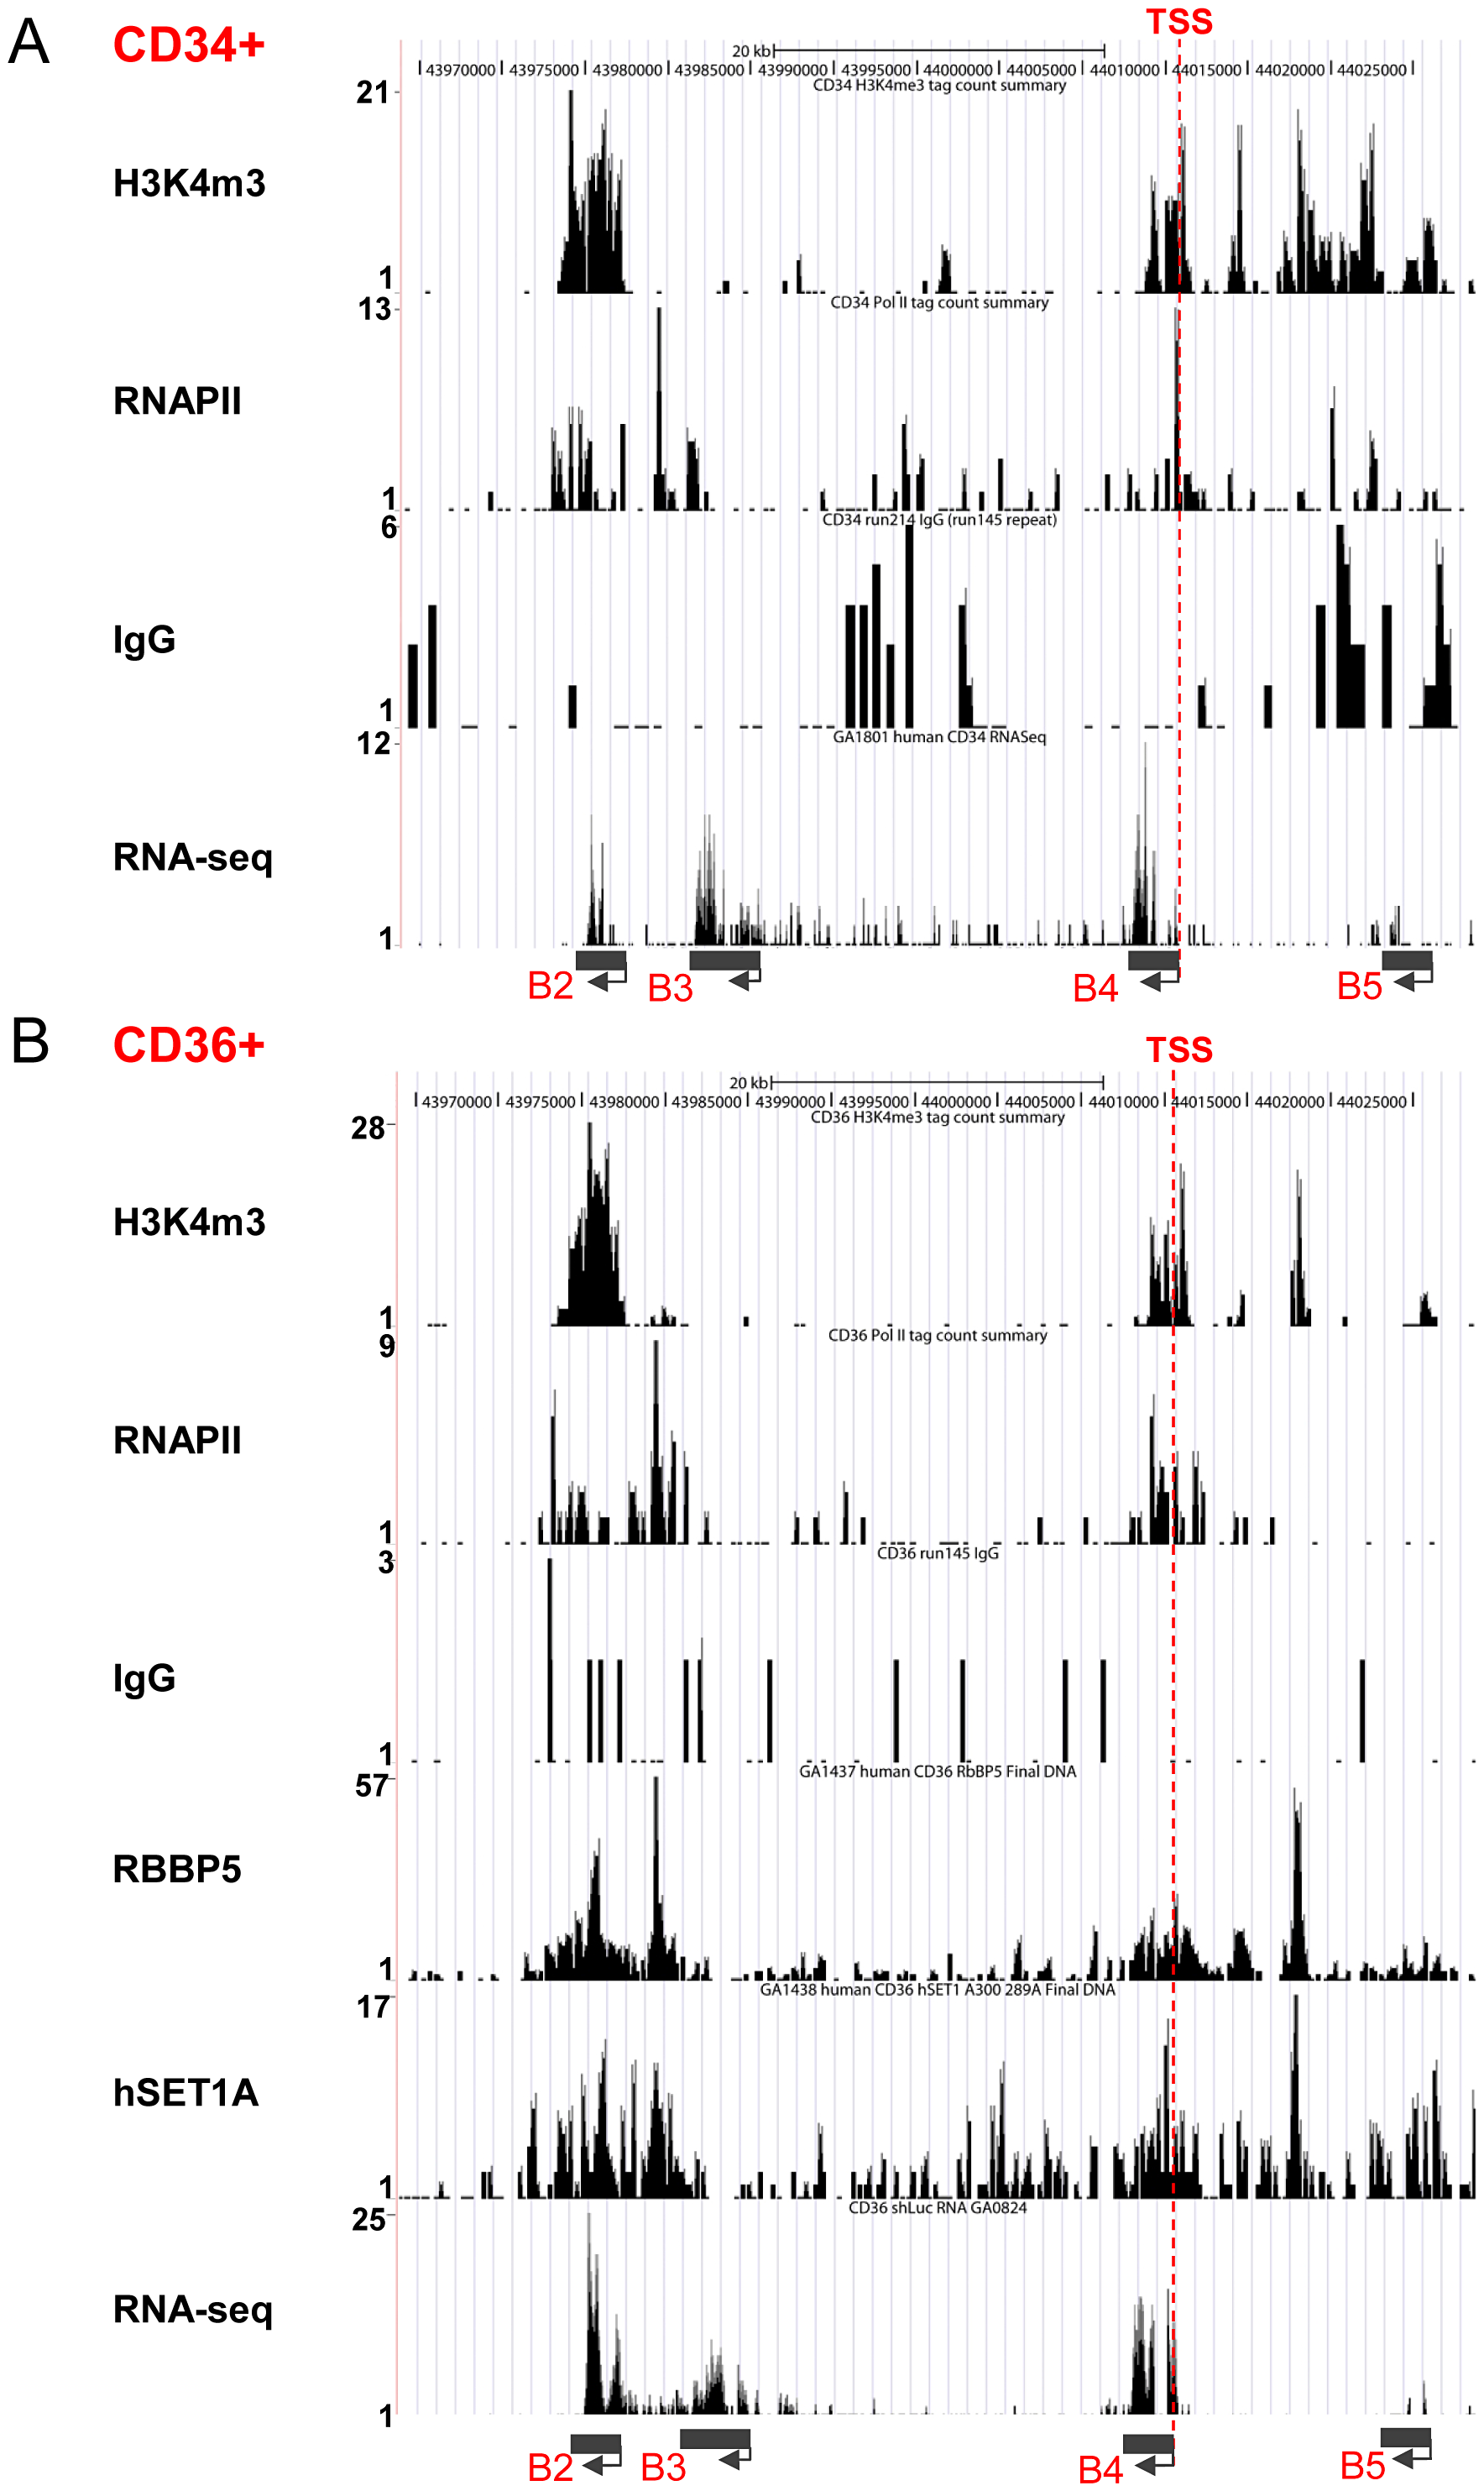 Recruitment of the hSET1A complex and H3K4me3 correlates with expression of the <i>HoxB4</i> gene during hematopoiesis.